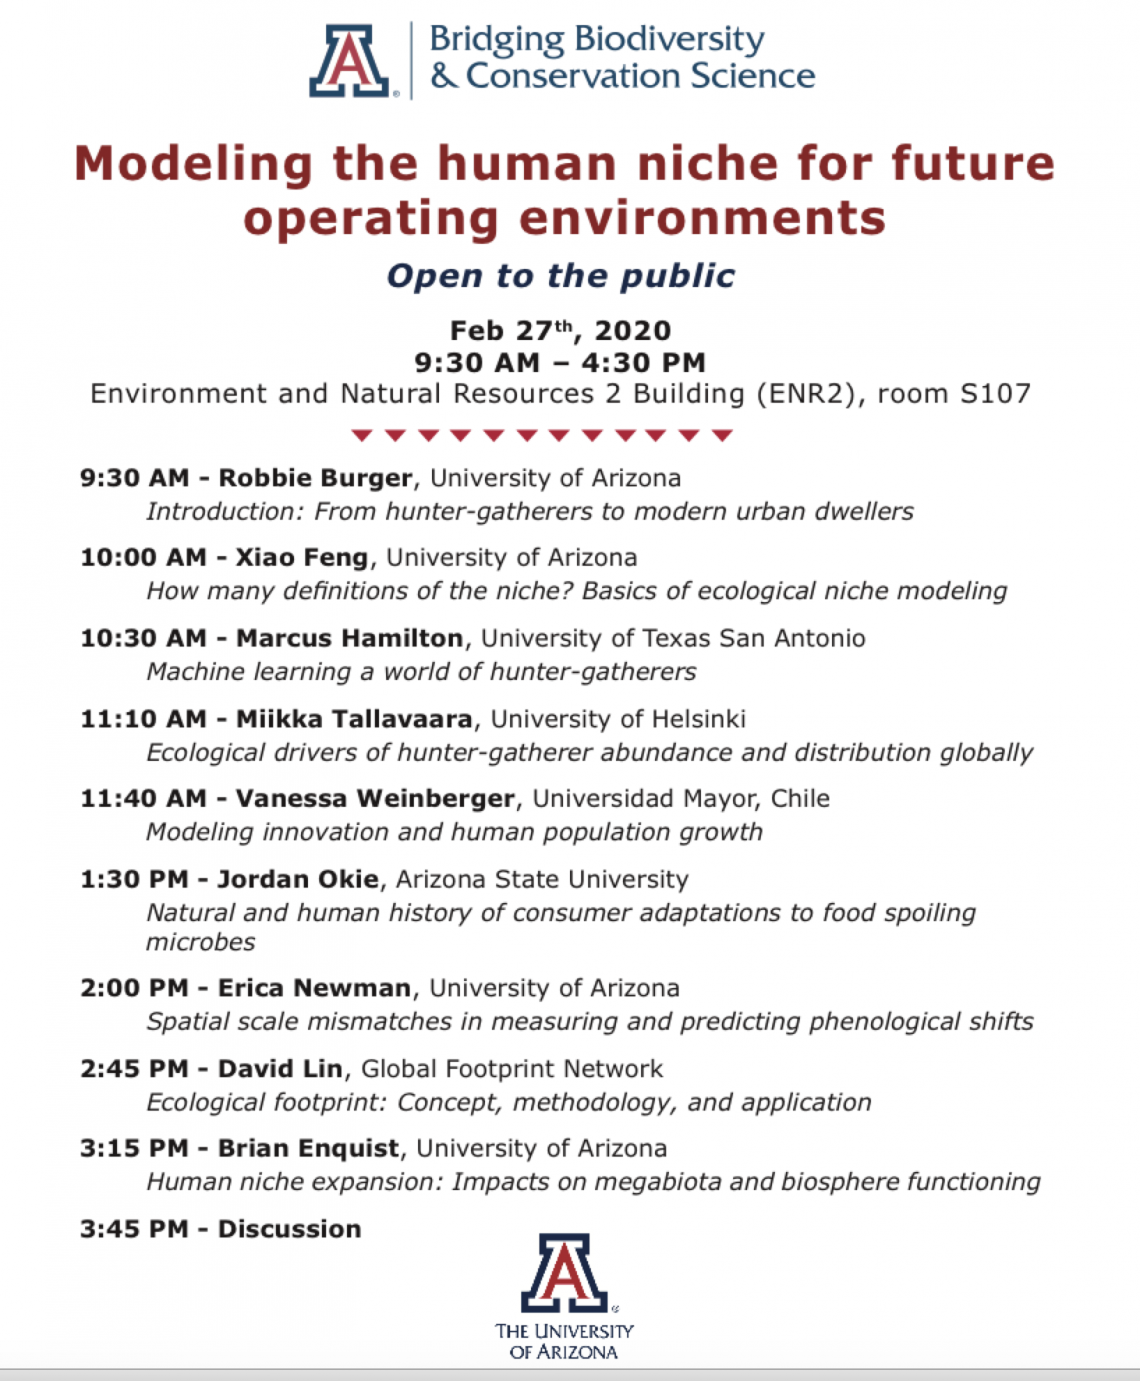 Modeling the human niche for future operating environments